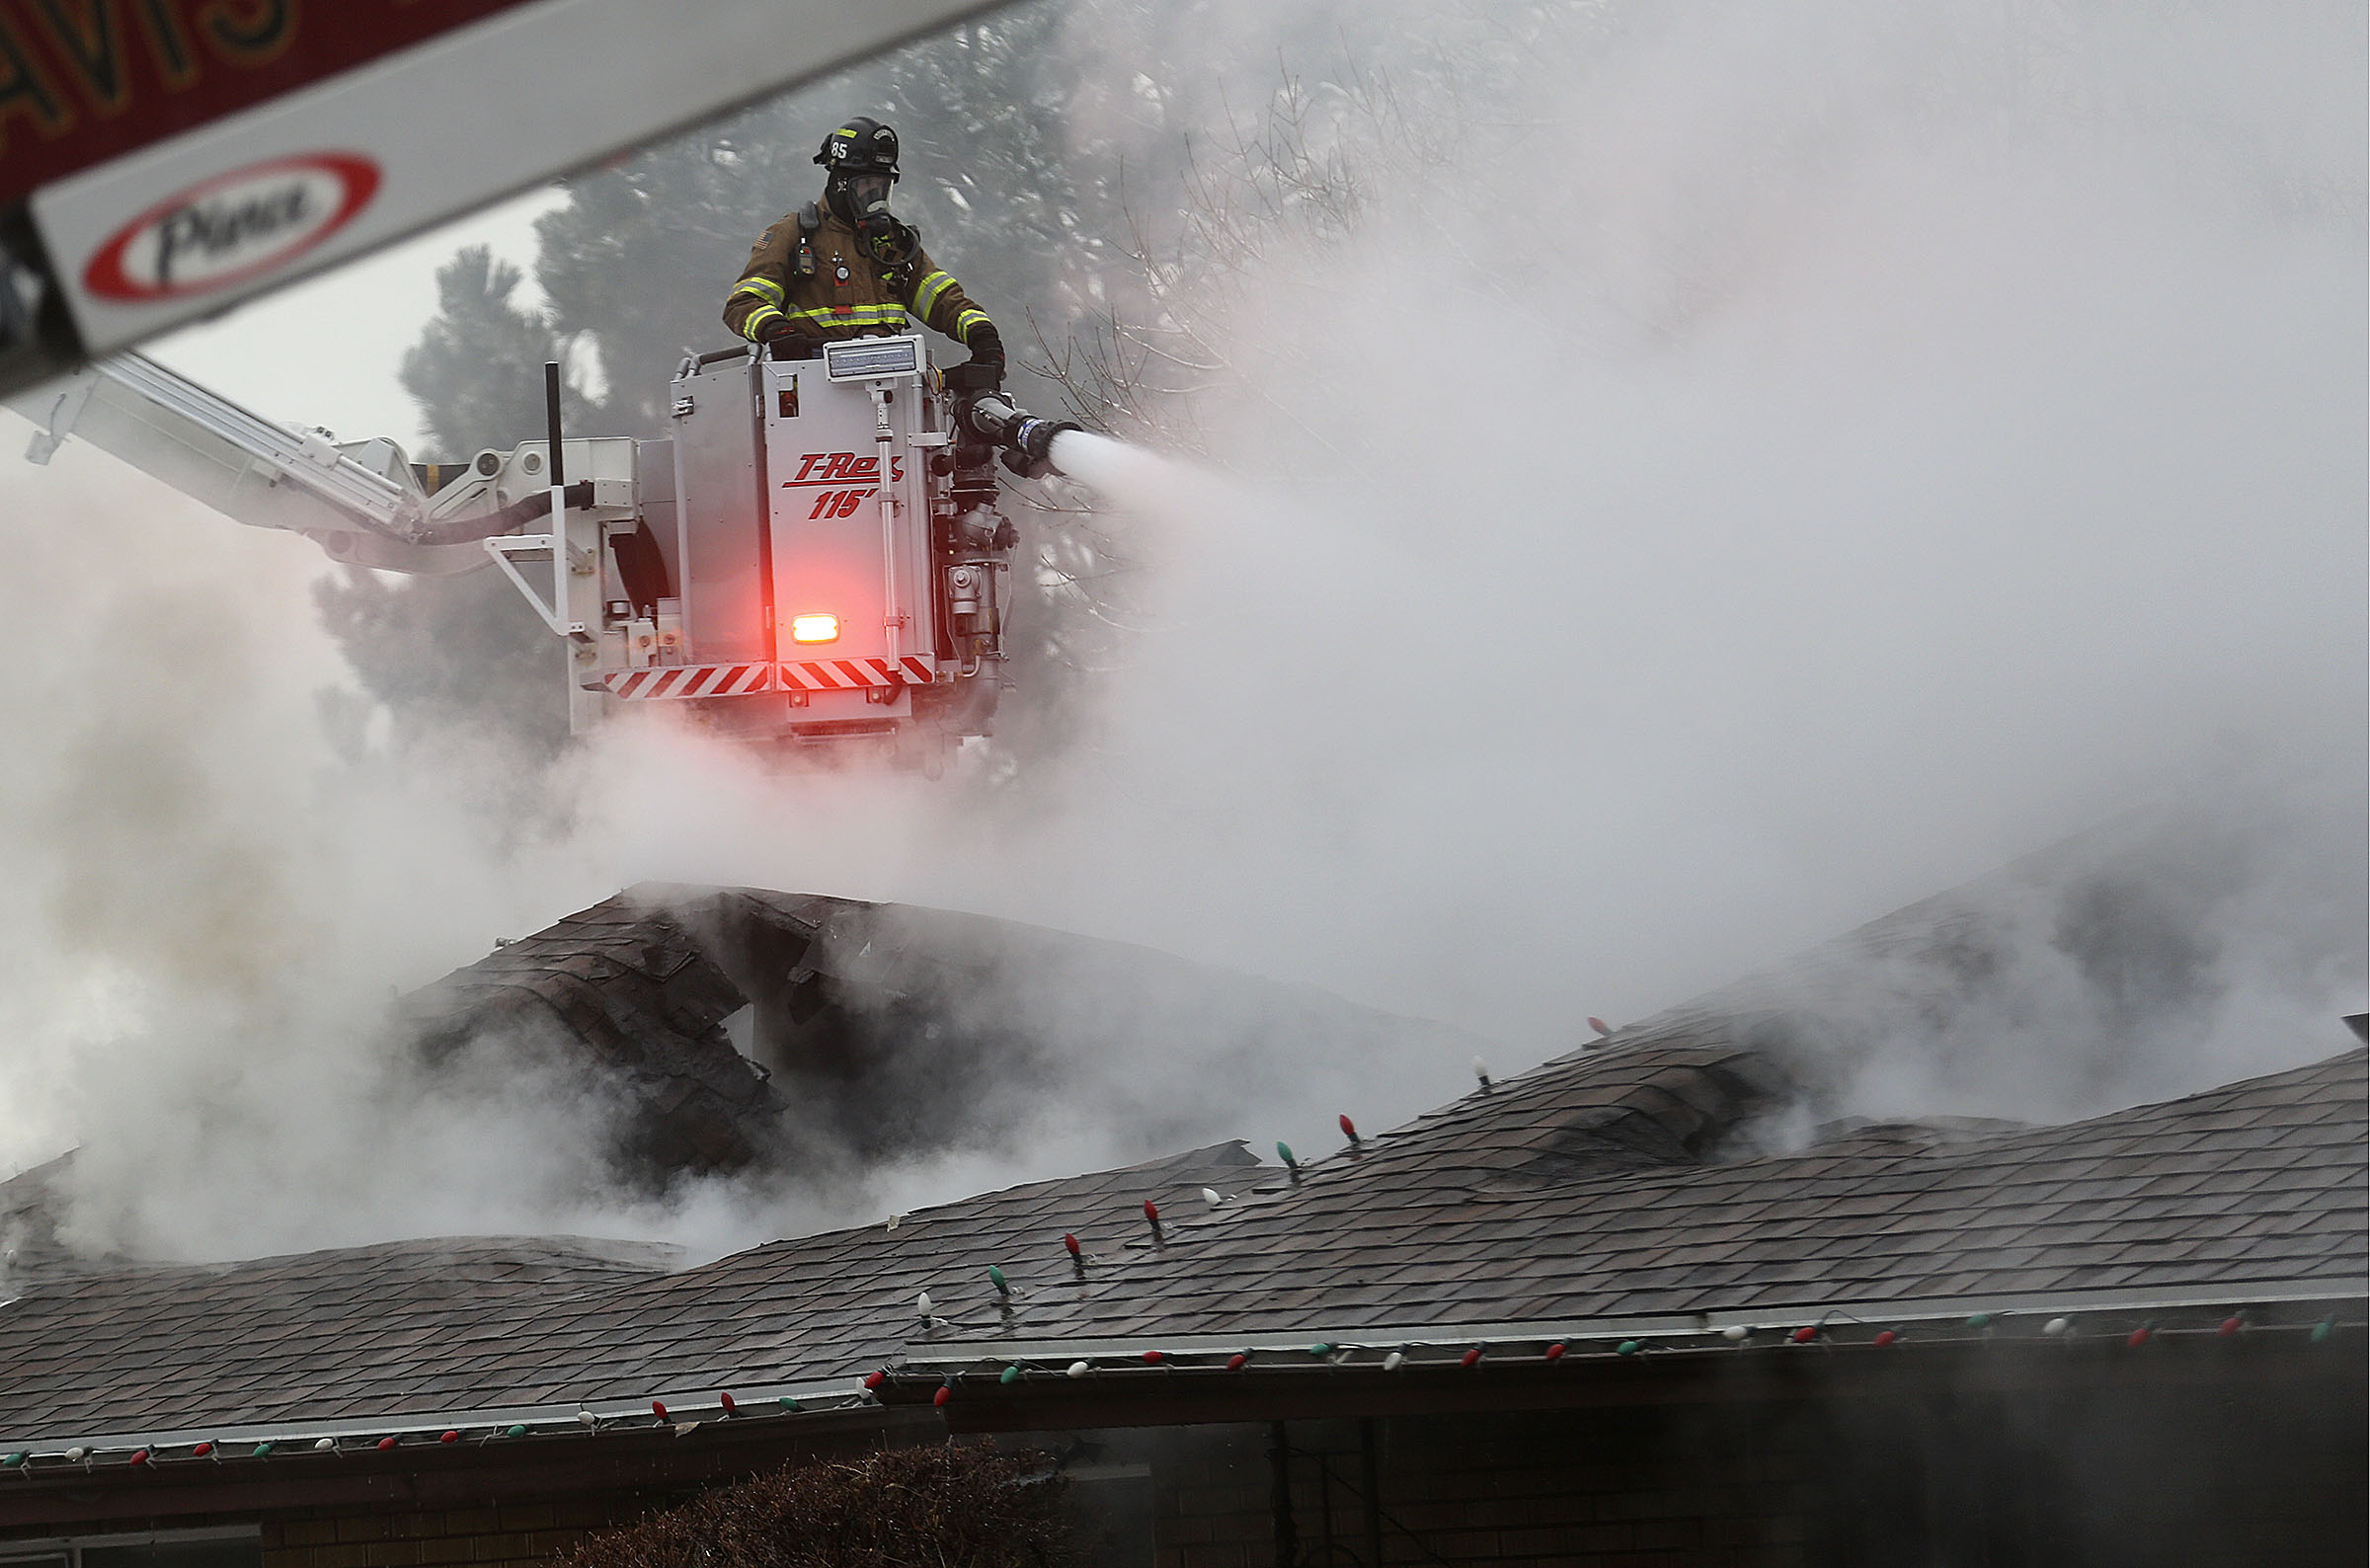 A firefighter battles a house fire in Bountiful on Tuesday, Jan. 14, 2020.